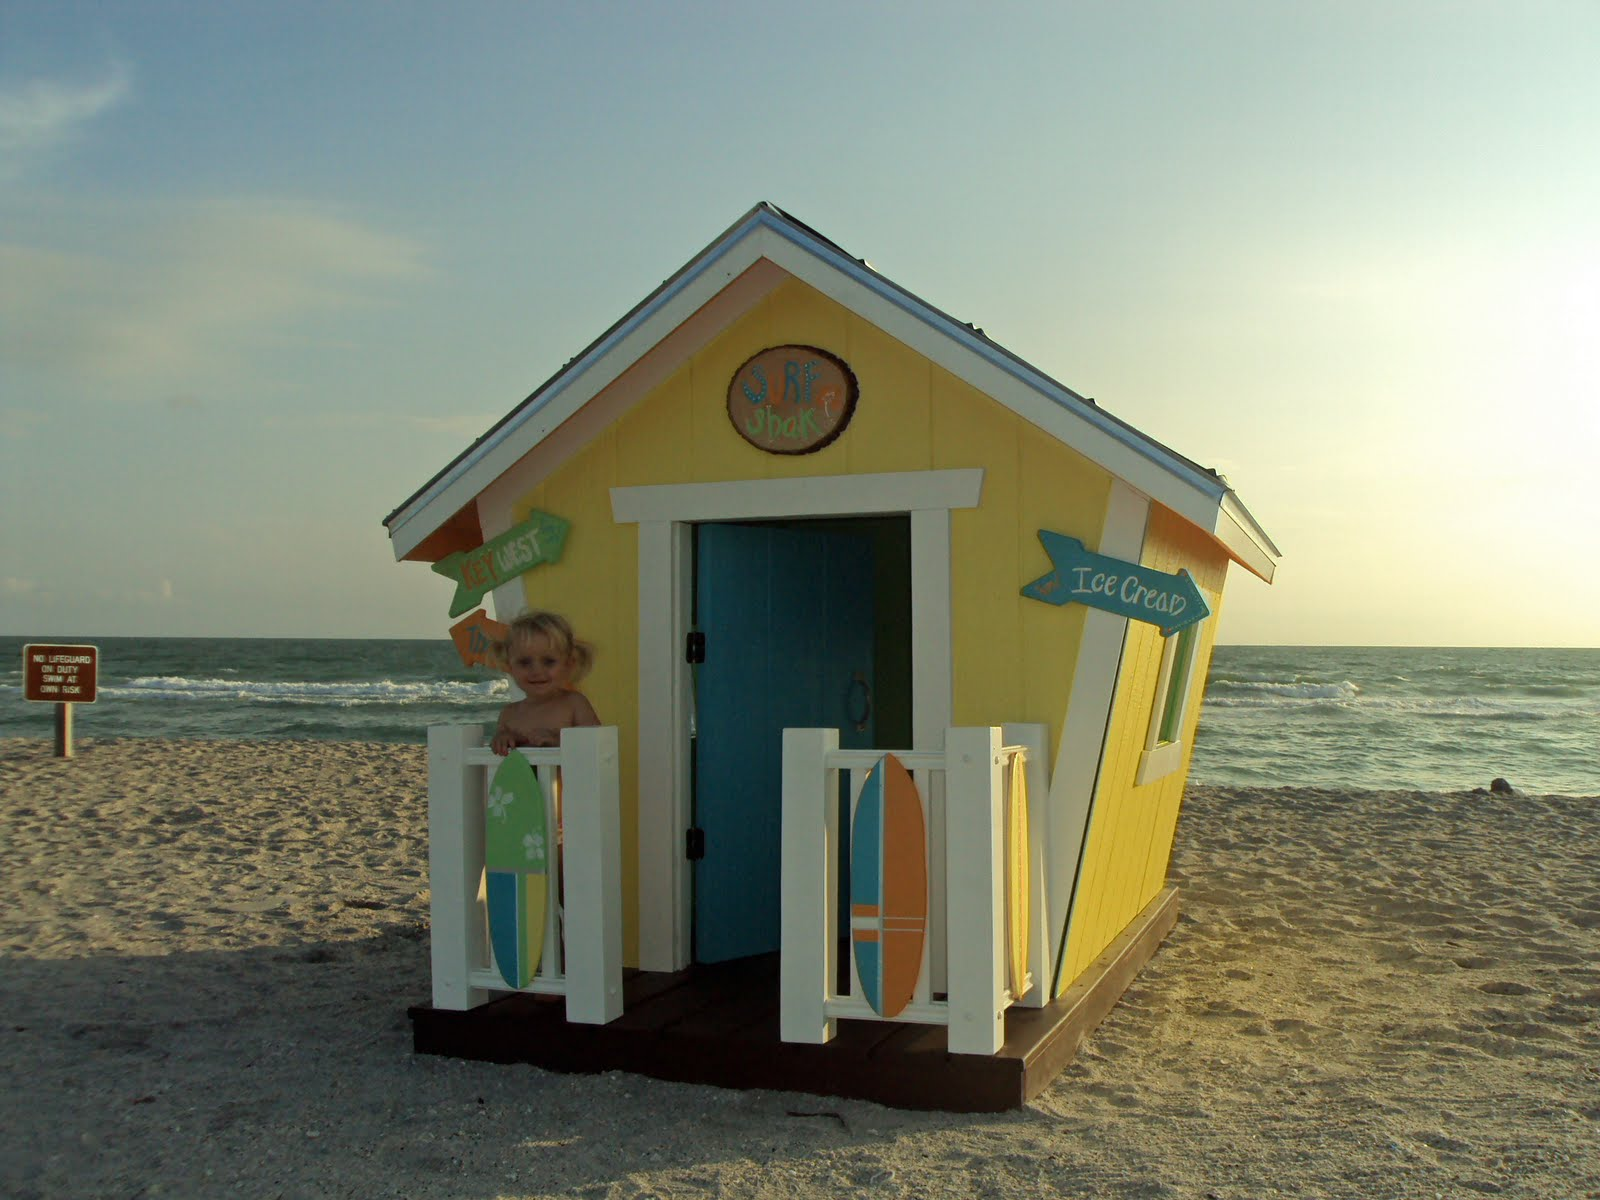 Tiny house wallpaper wallpapersafari for Small beach homes